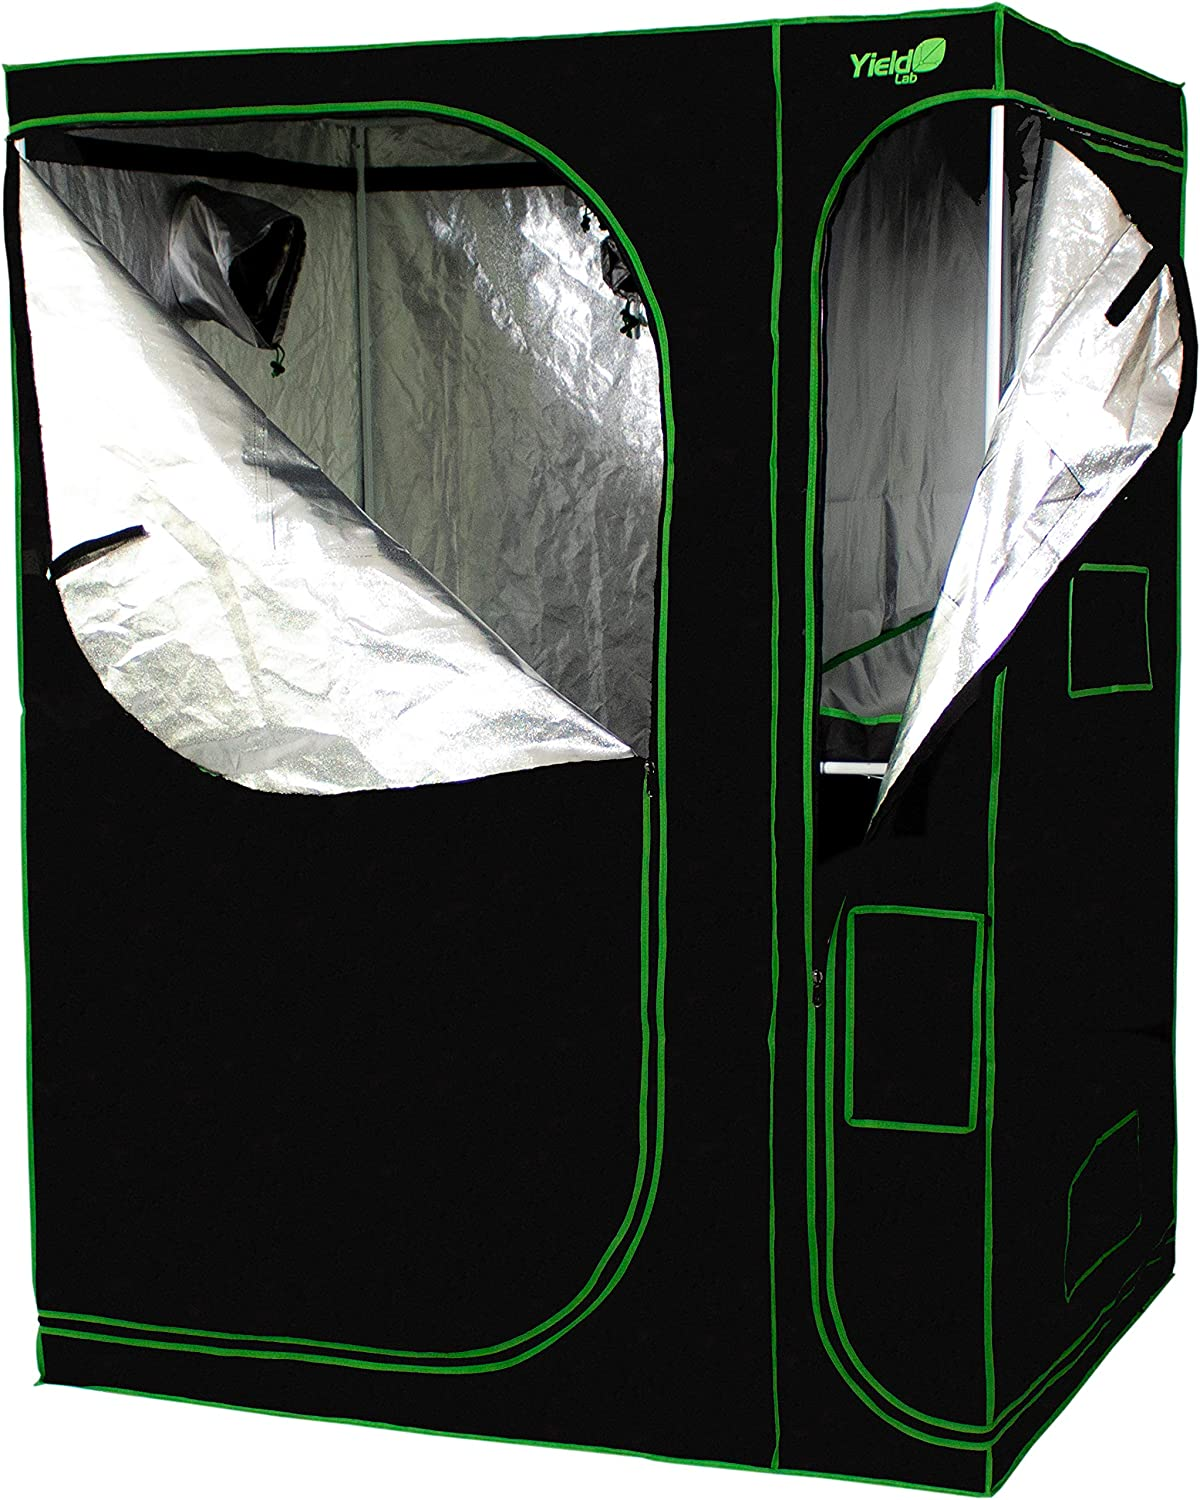 Yield Lab 60 x 48 x 80 2-in-1 Full Cycle Reflective Plant Grow Tent with Viewing Windows and Flood Trays Hydroponic Horticulture Growing Tent for Herbs, Spices, Fruits and Vegetables